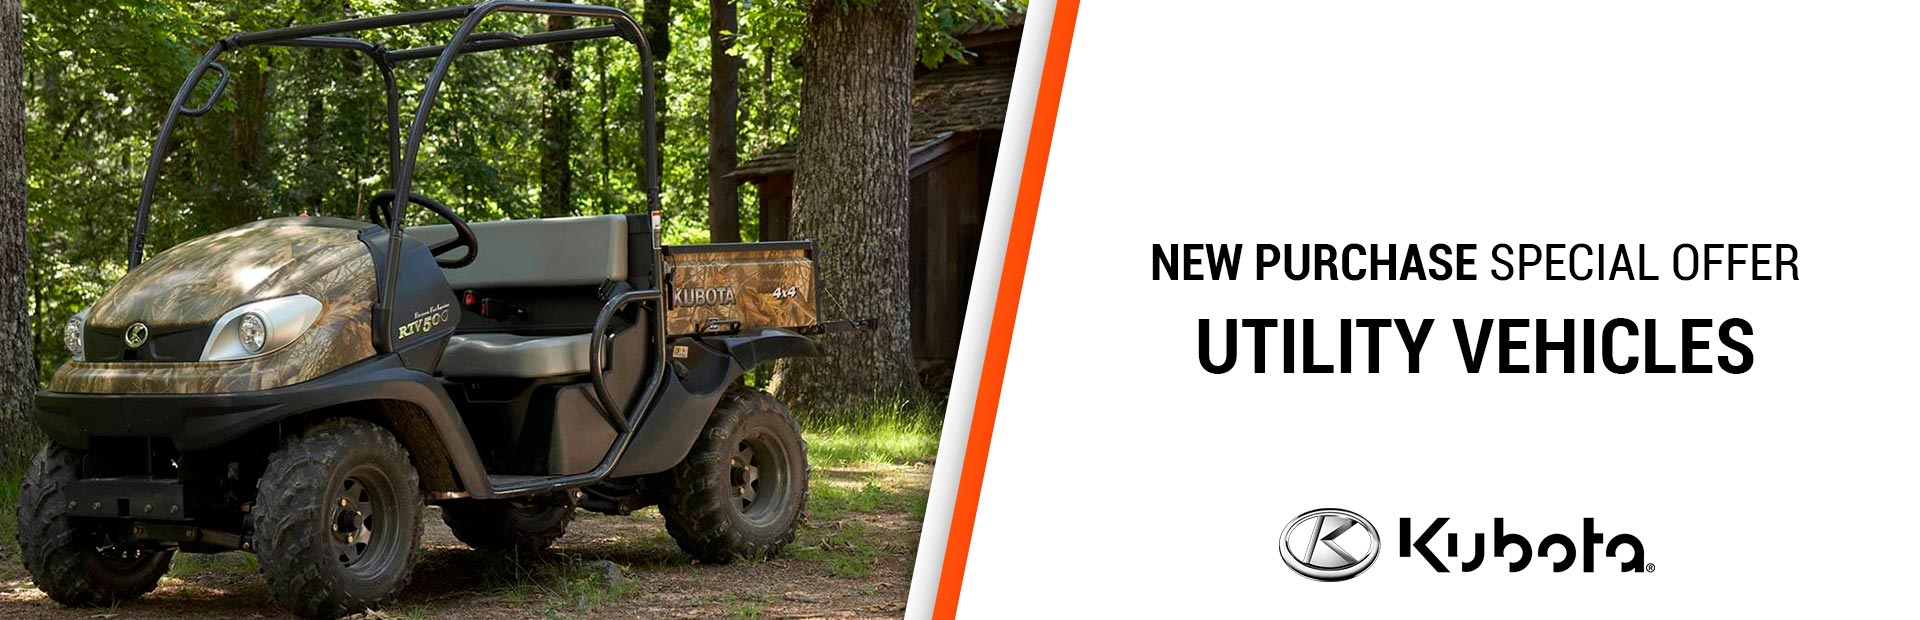 Kubota: New Purchase Special Offers - Utility Vehicles